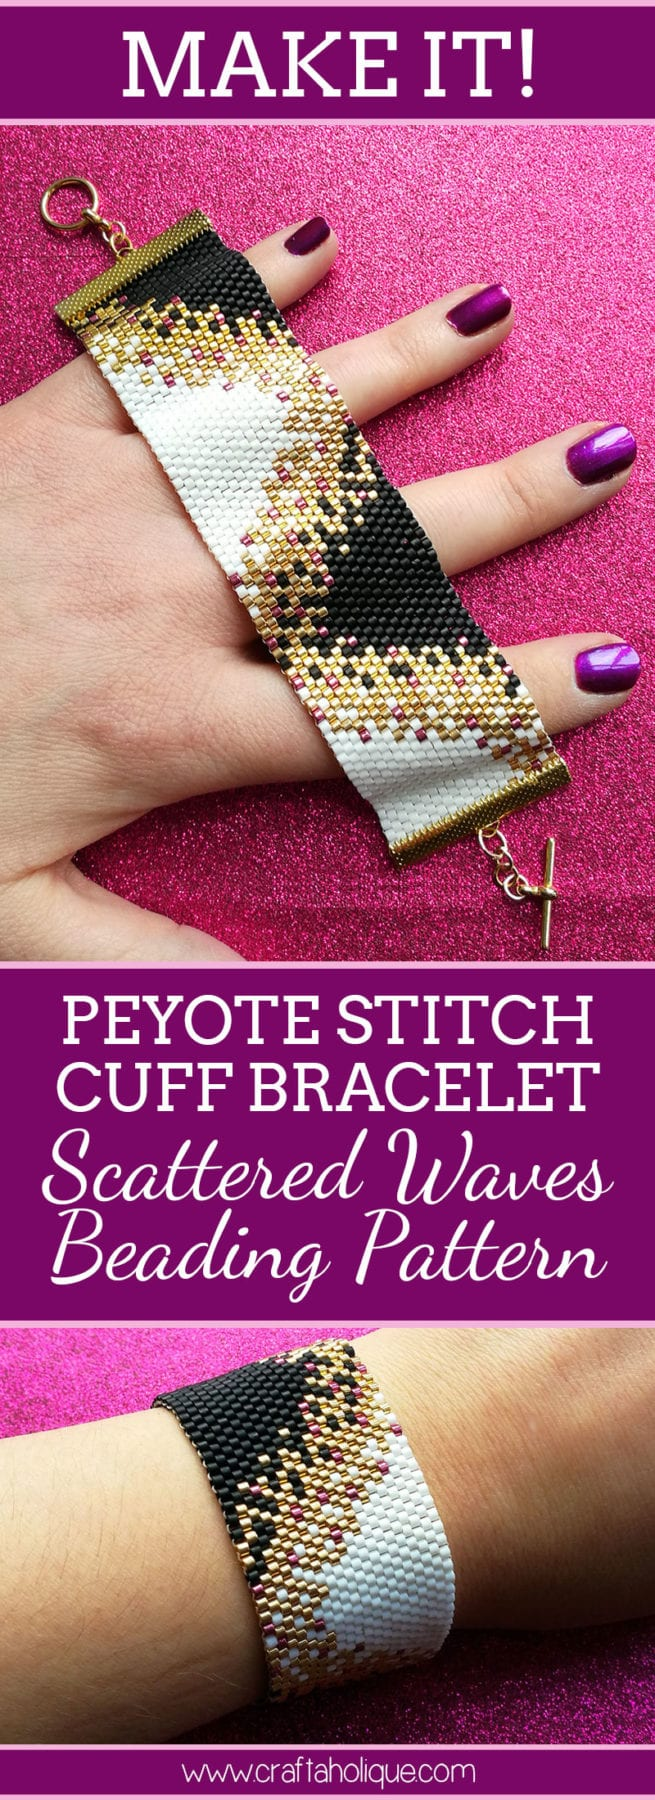 Peyote Stitch Patterns - Black and White Peyote Bracelet - Beading Project